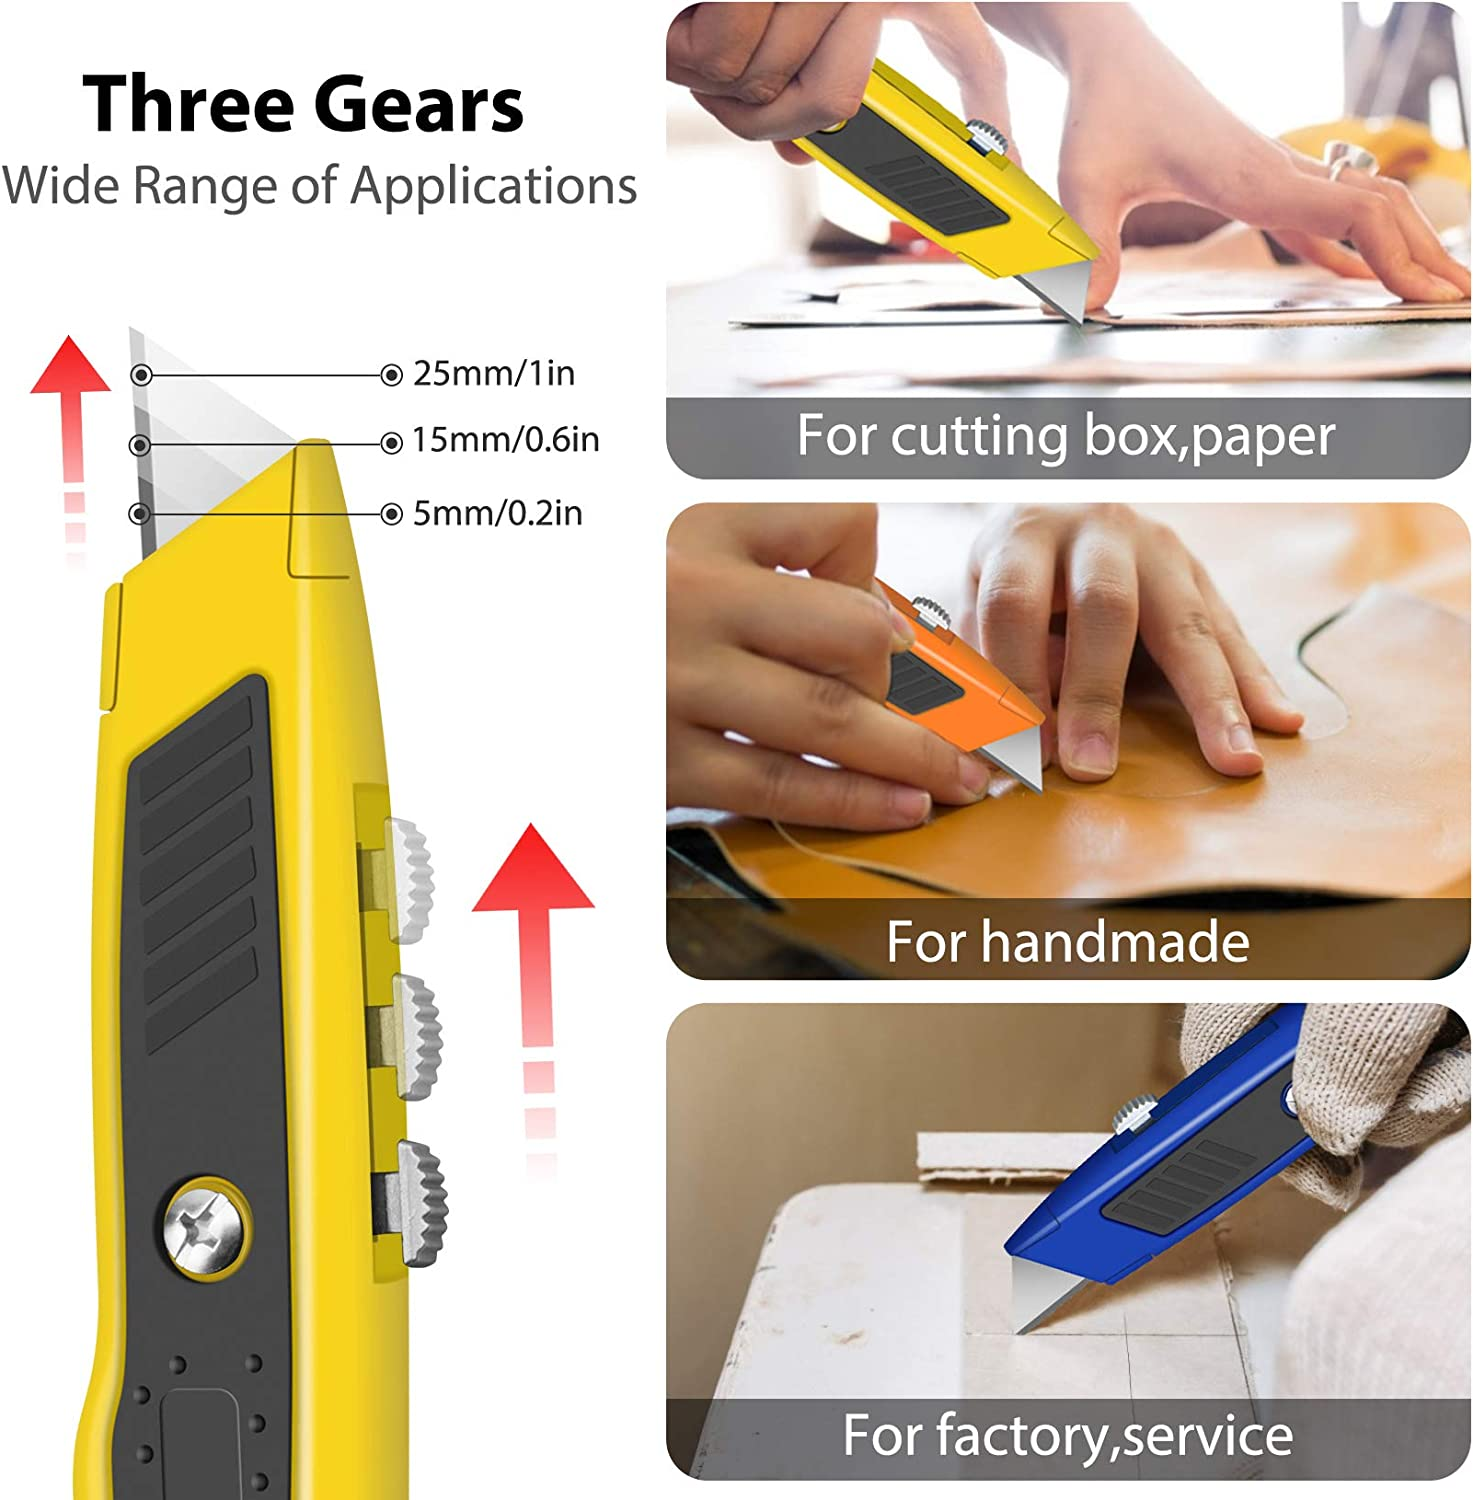 4-PACK Box Cutter Colorful Utility Knife Heavy Duty Aluminum Shell Box Cutters Retractable for Cartons, Cardboard, Boxes - -